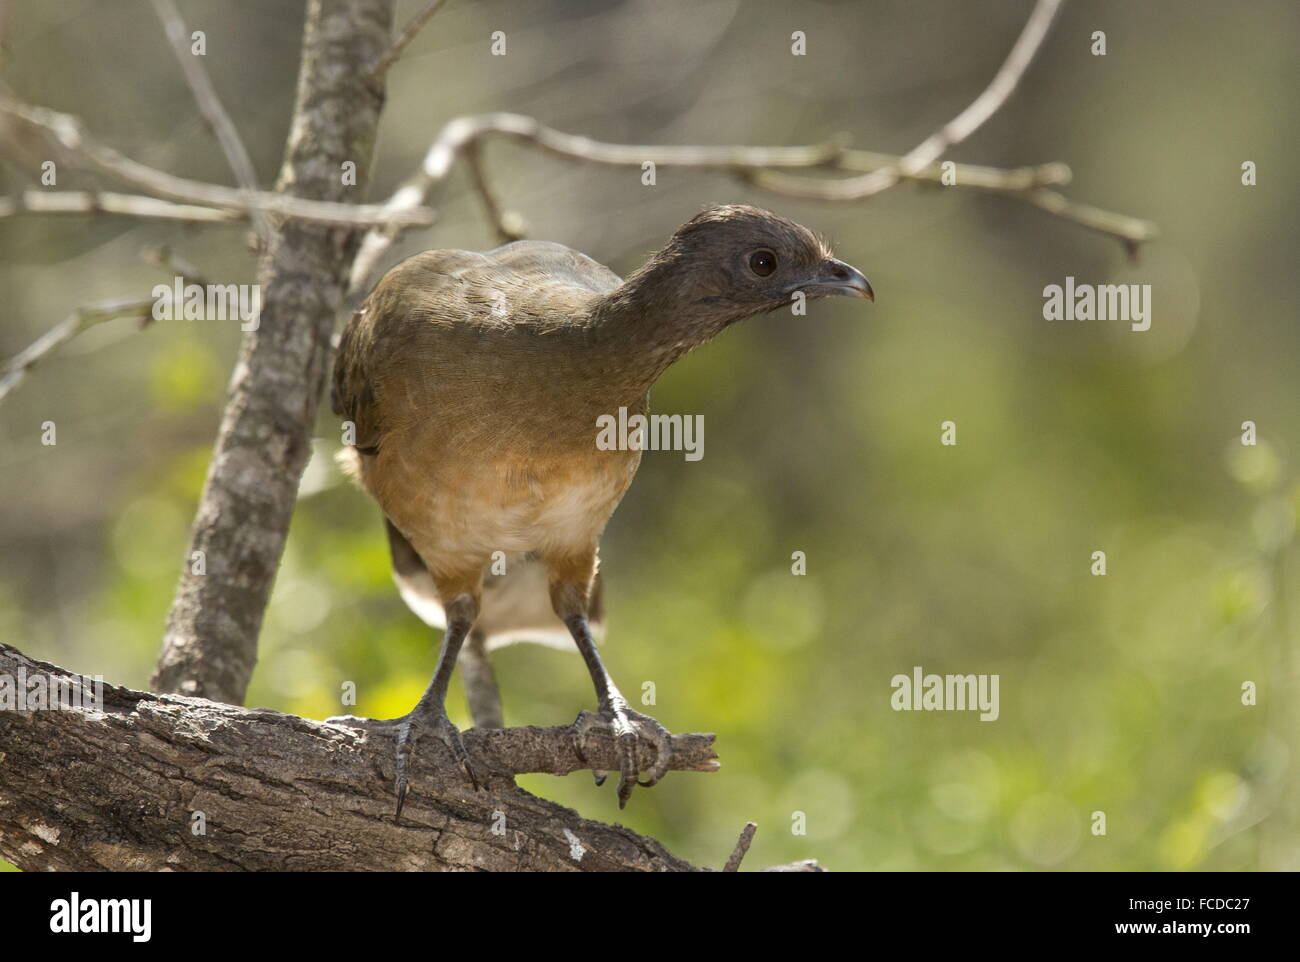 Plain Chachalaca, Ortalis vetula perched on branch, Rio Grande valley, Texas. - Stock Image